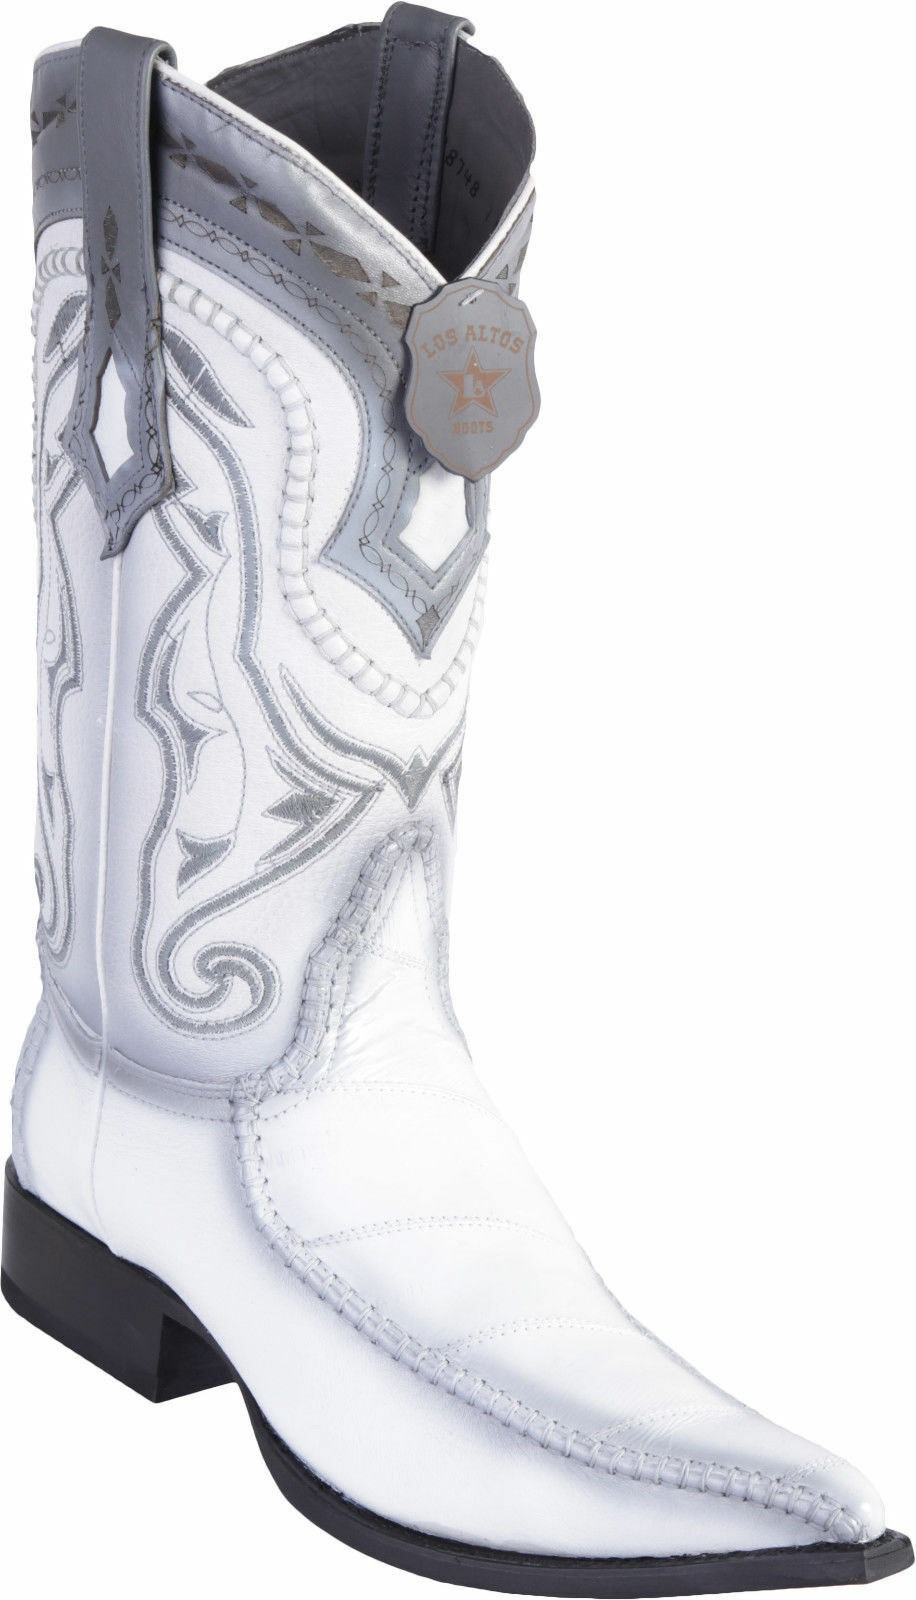 LOS ALTOS Uomo BIANCA GENUINE EEL EEL GENUINE 3X TOE WESTERN COWBOY BOOT EE+ 13ac80